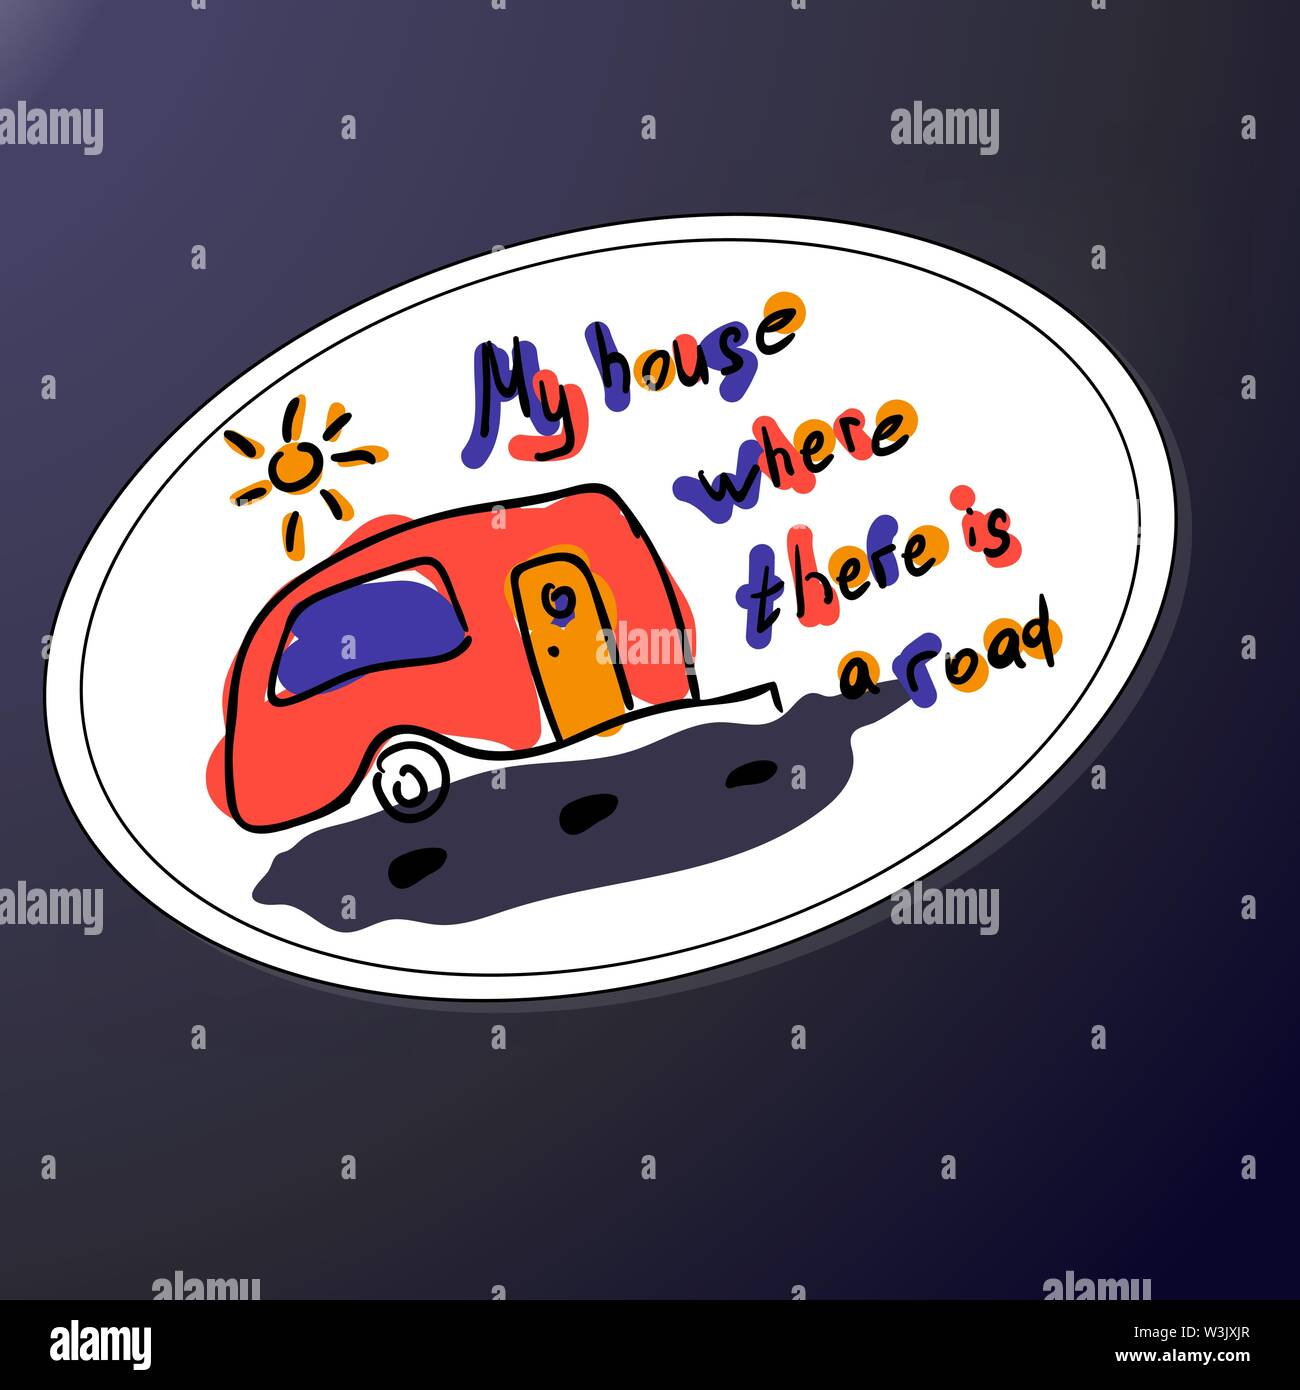 My house where there is road. Inspirational quote. Hand calligraphy scribble. Funny letters and camper. Sticker or print shirt for tourists badge, travelers. Stylized Logo outdoor recreation in the style of doodle. Careless colors red, yellow, blue. Stock Vector